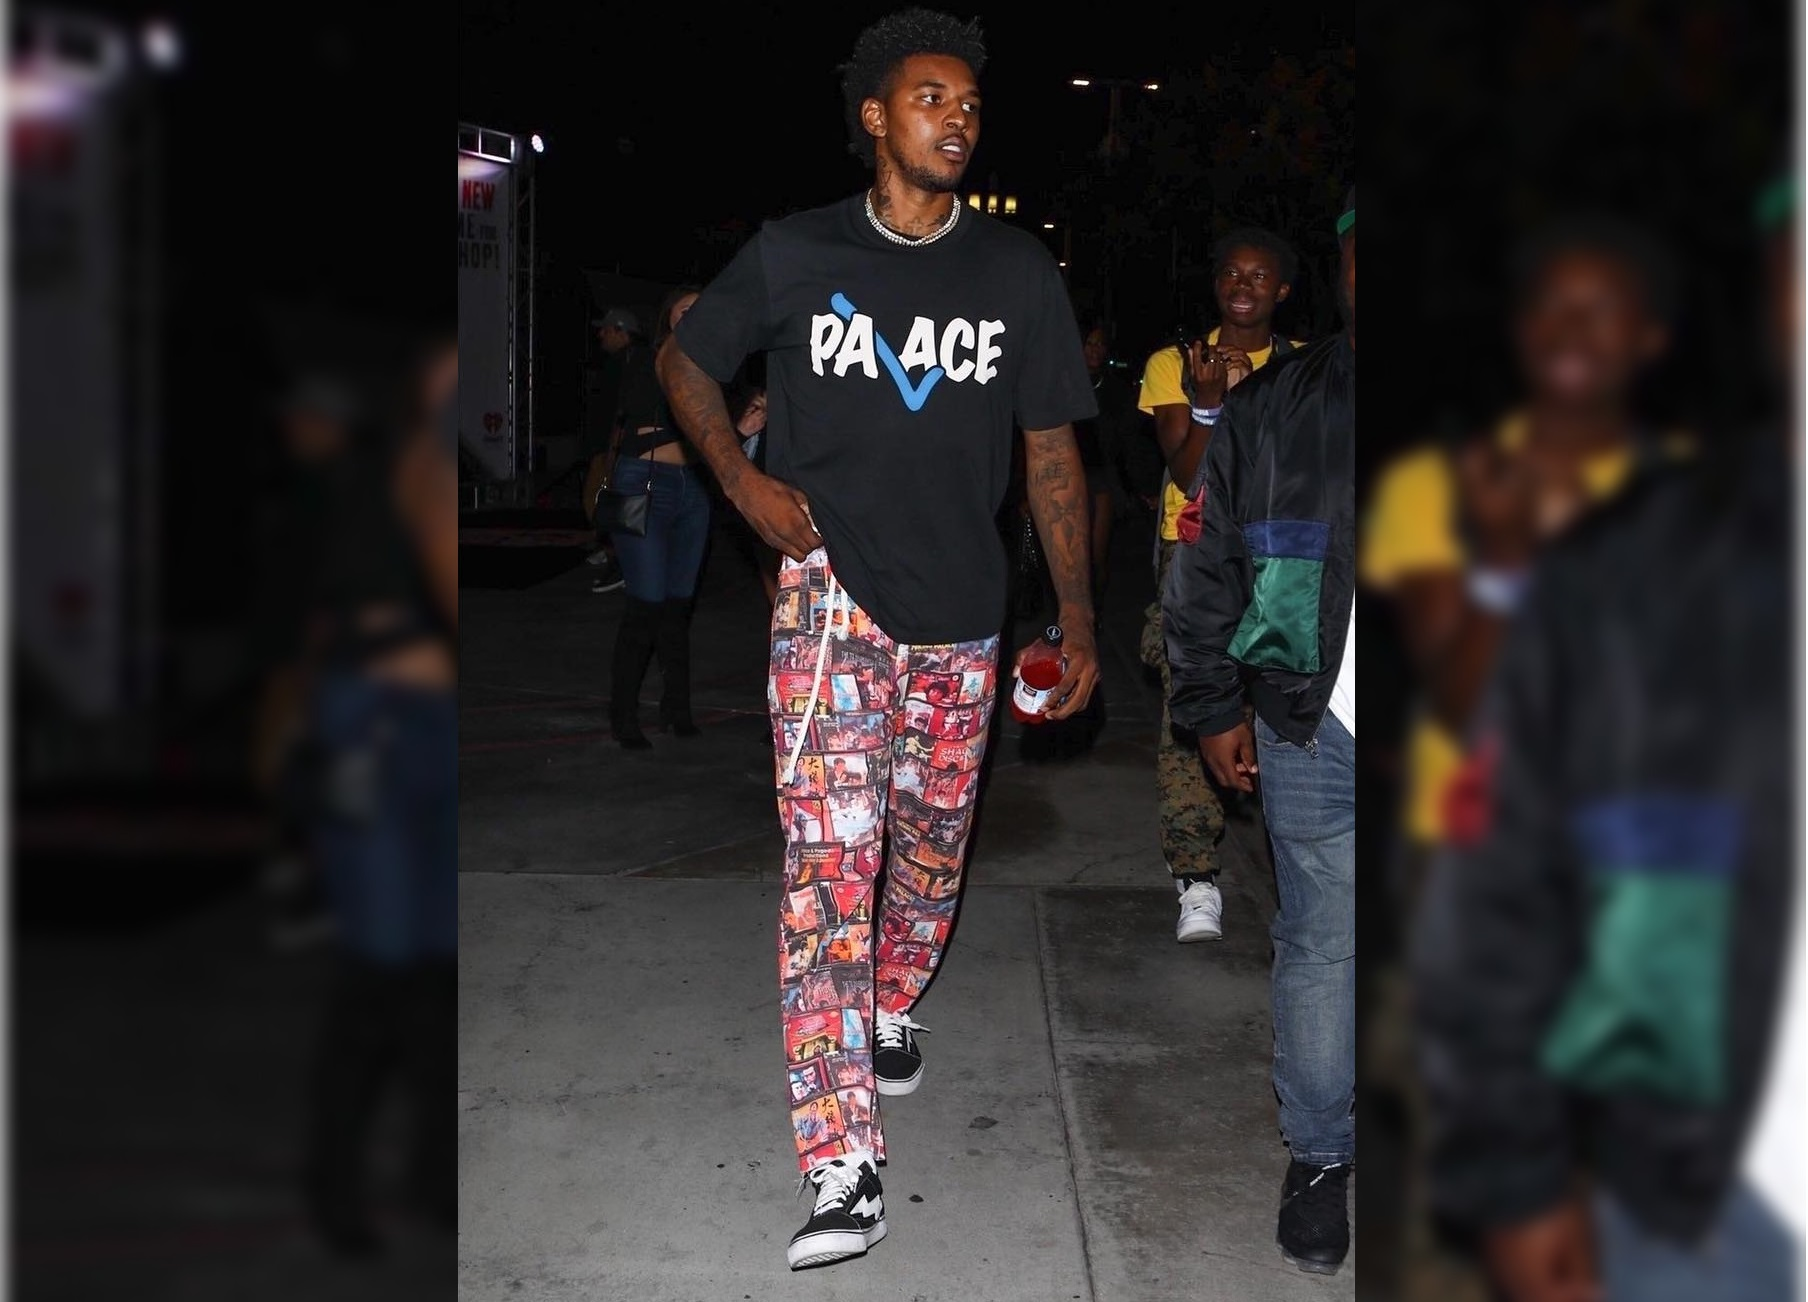 SPOTTED: Nick Young Rocks Palace and Revenge x Storm